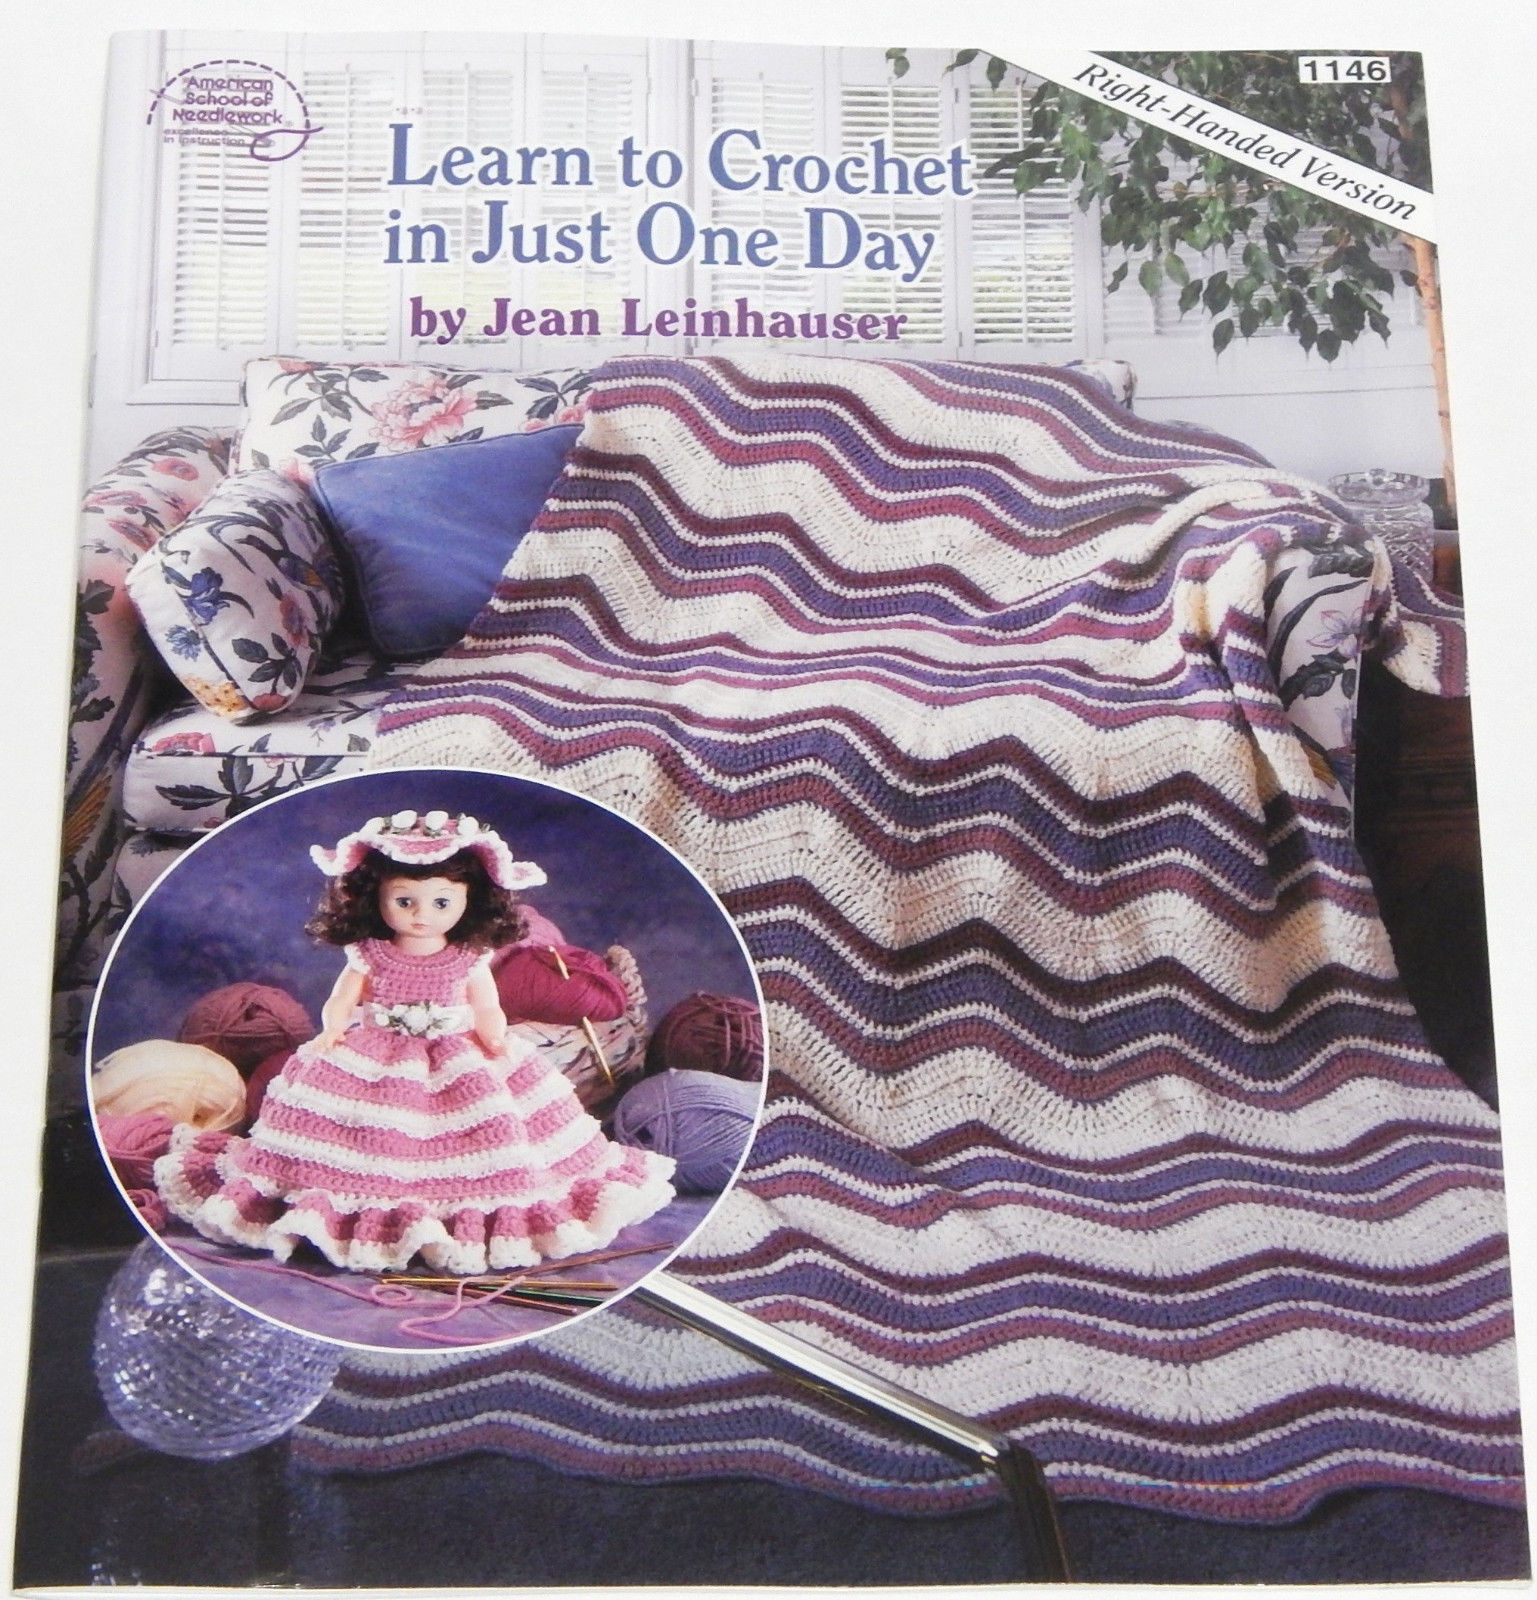 Learn To Crochet in Just One Day Right Handed Version Jean Leinhauser Booklet - $6.49